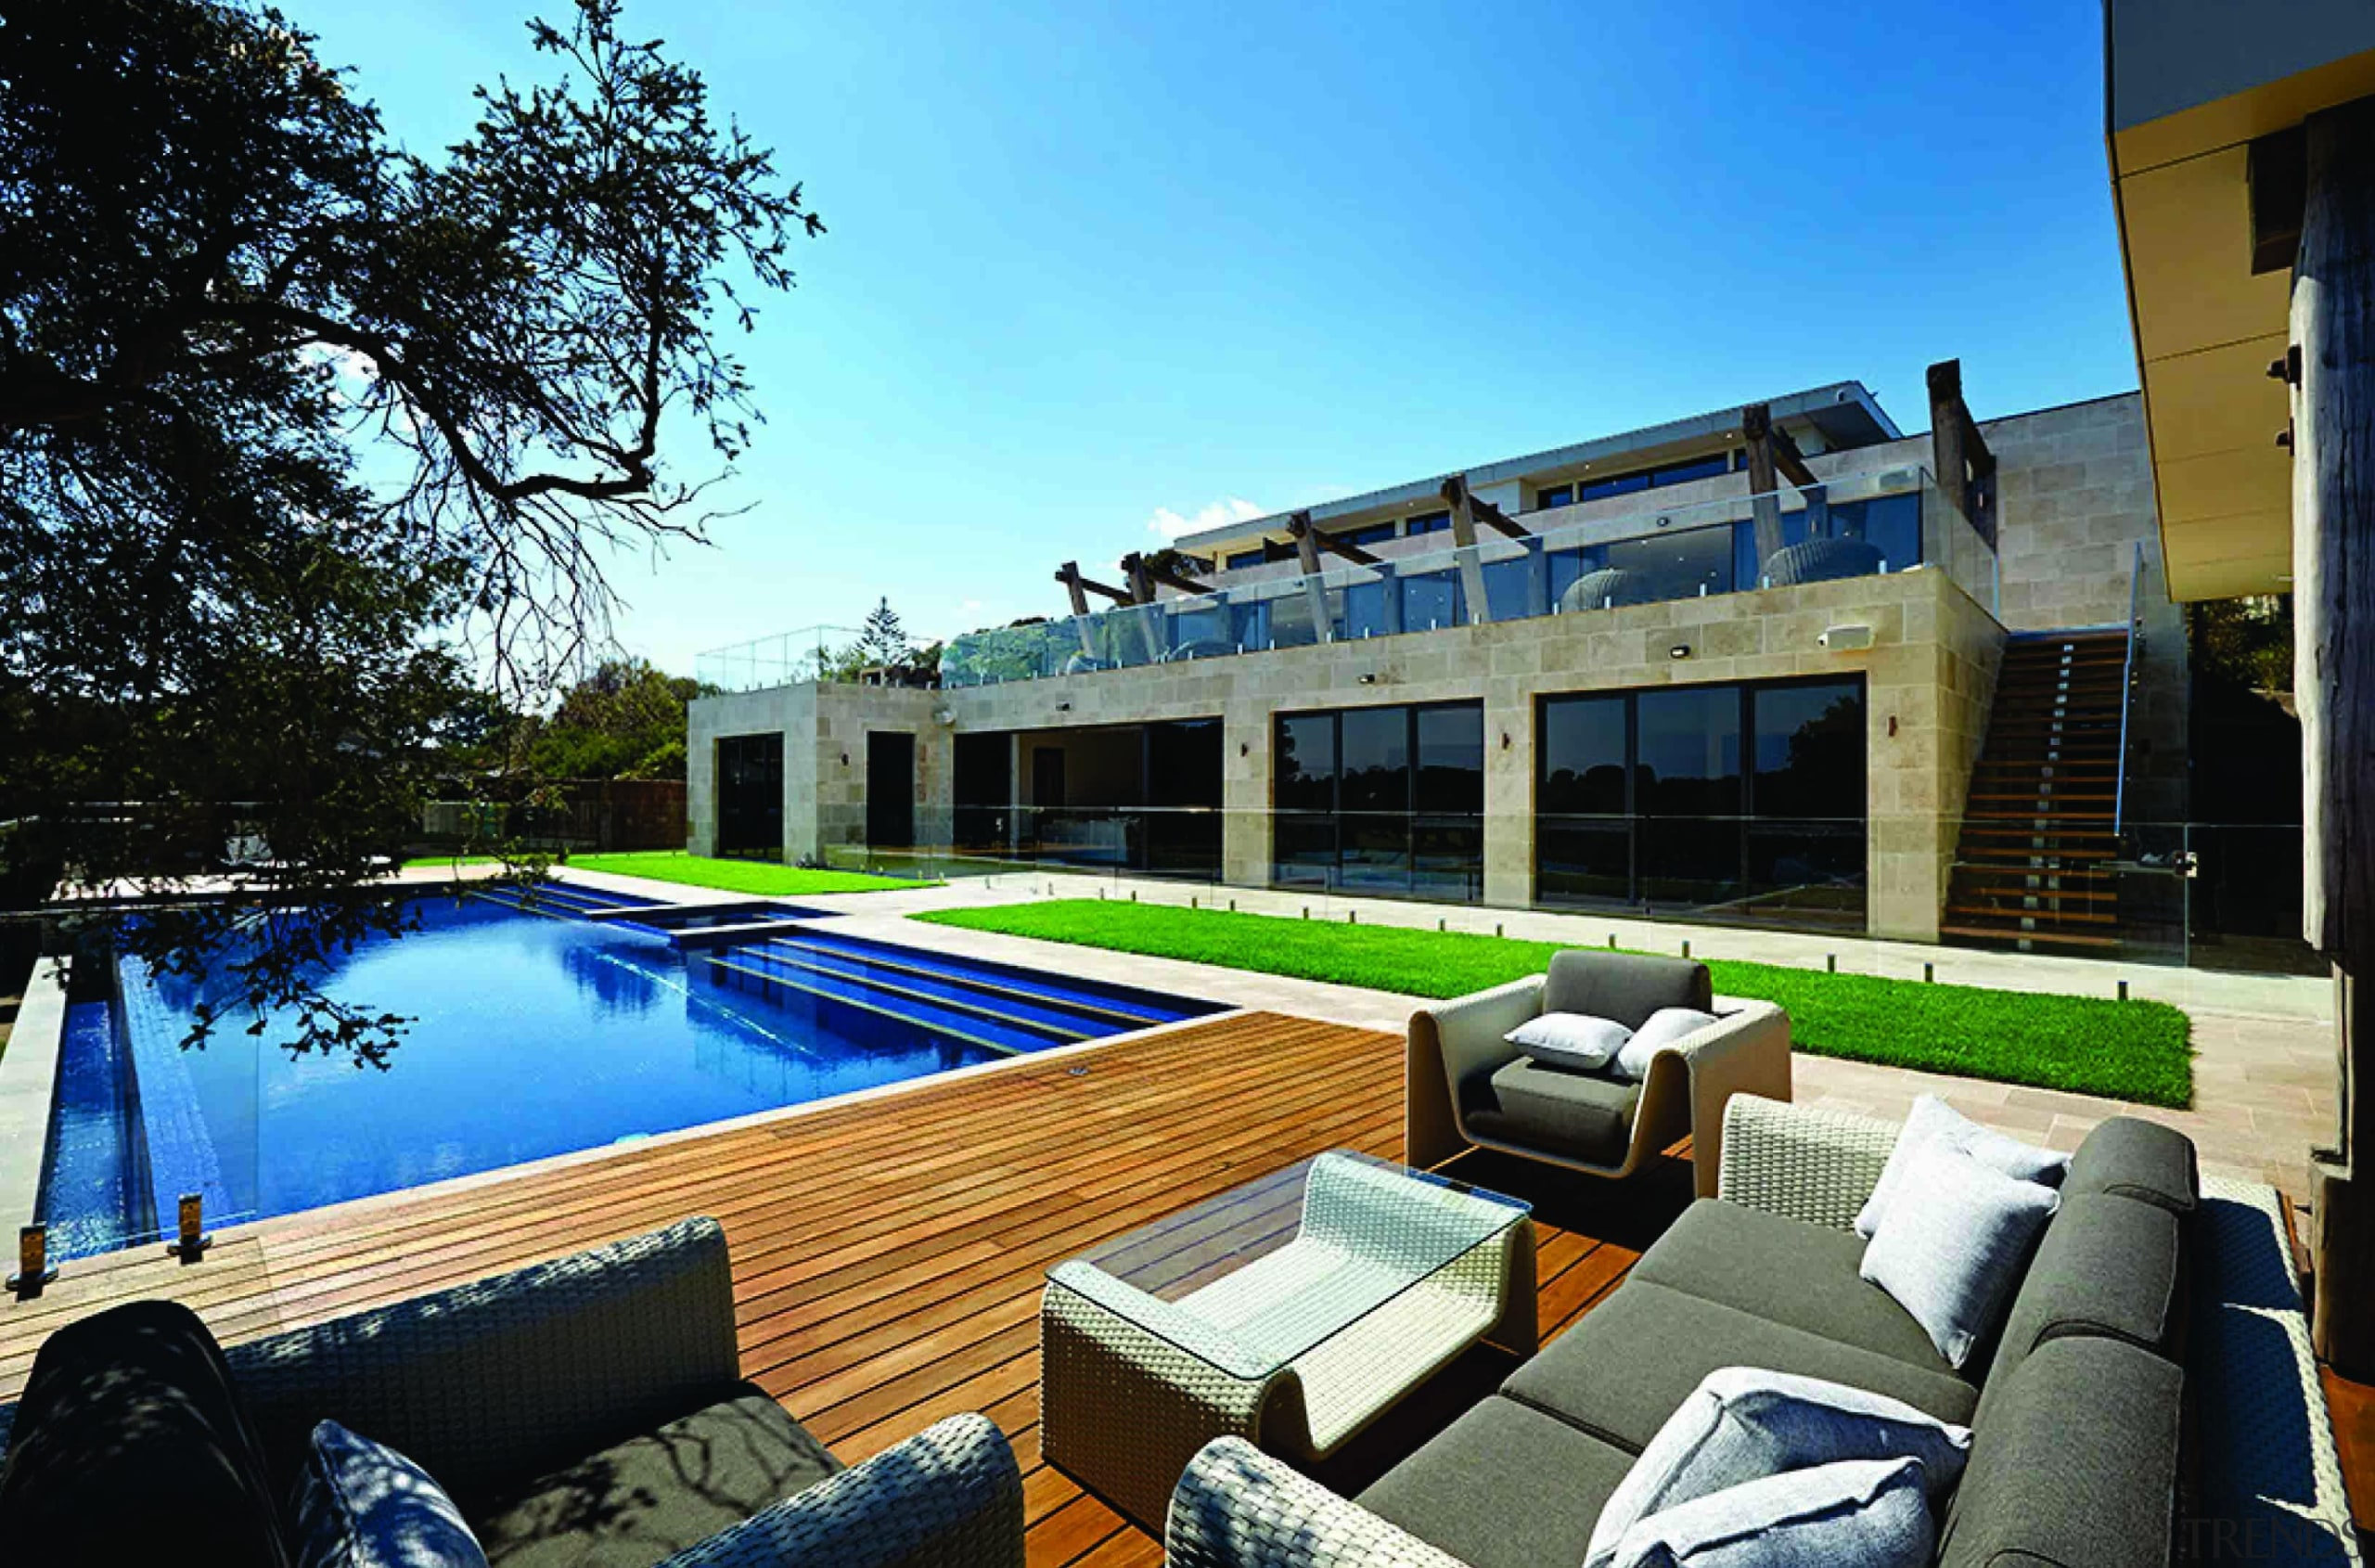 Once in are in the glazed pool area, apartment, estate, house, leisure, property, real estate, resort, swimming pool, villa, black